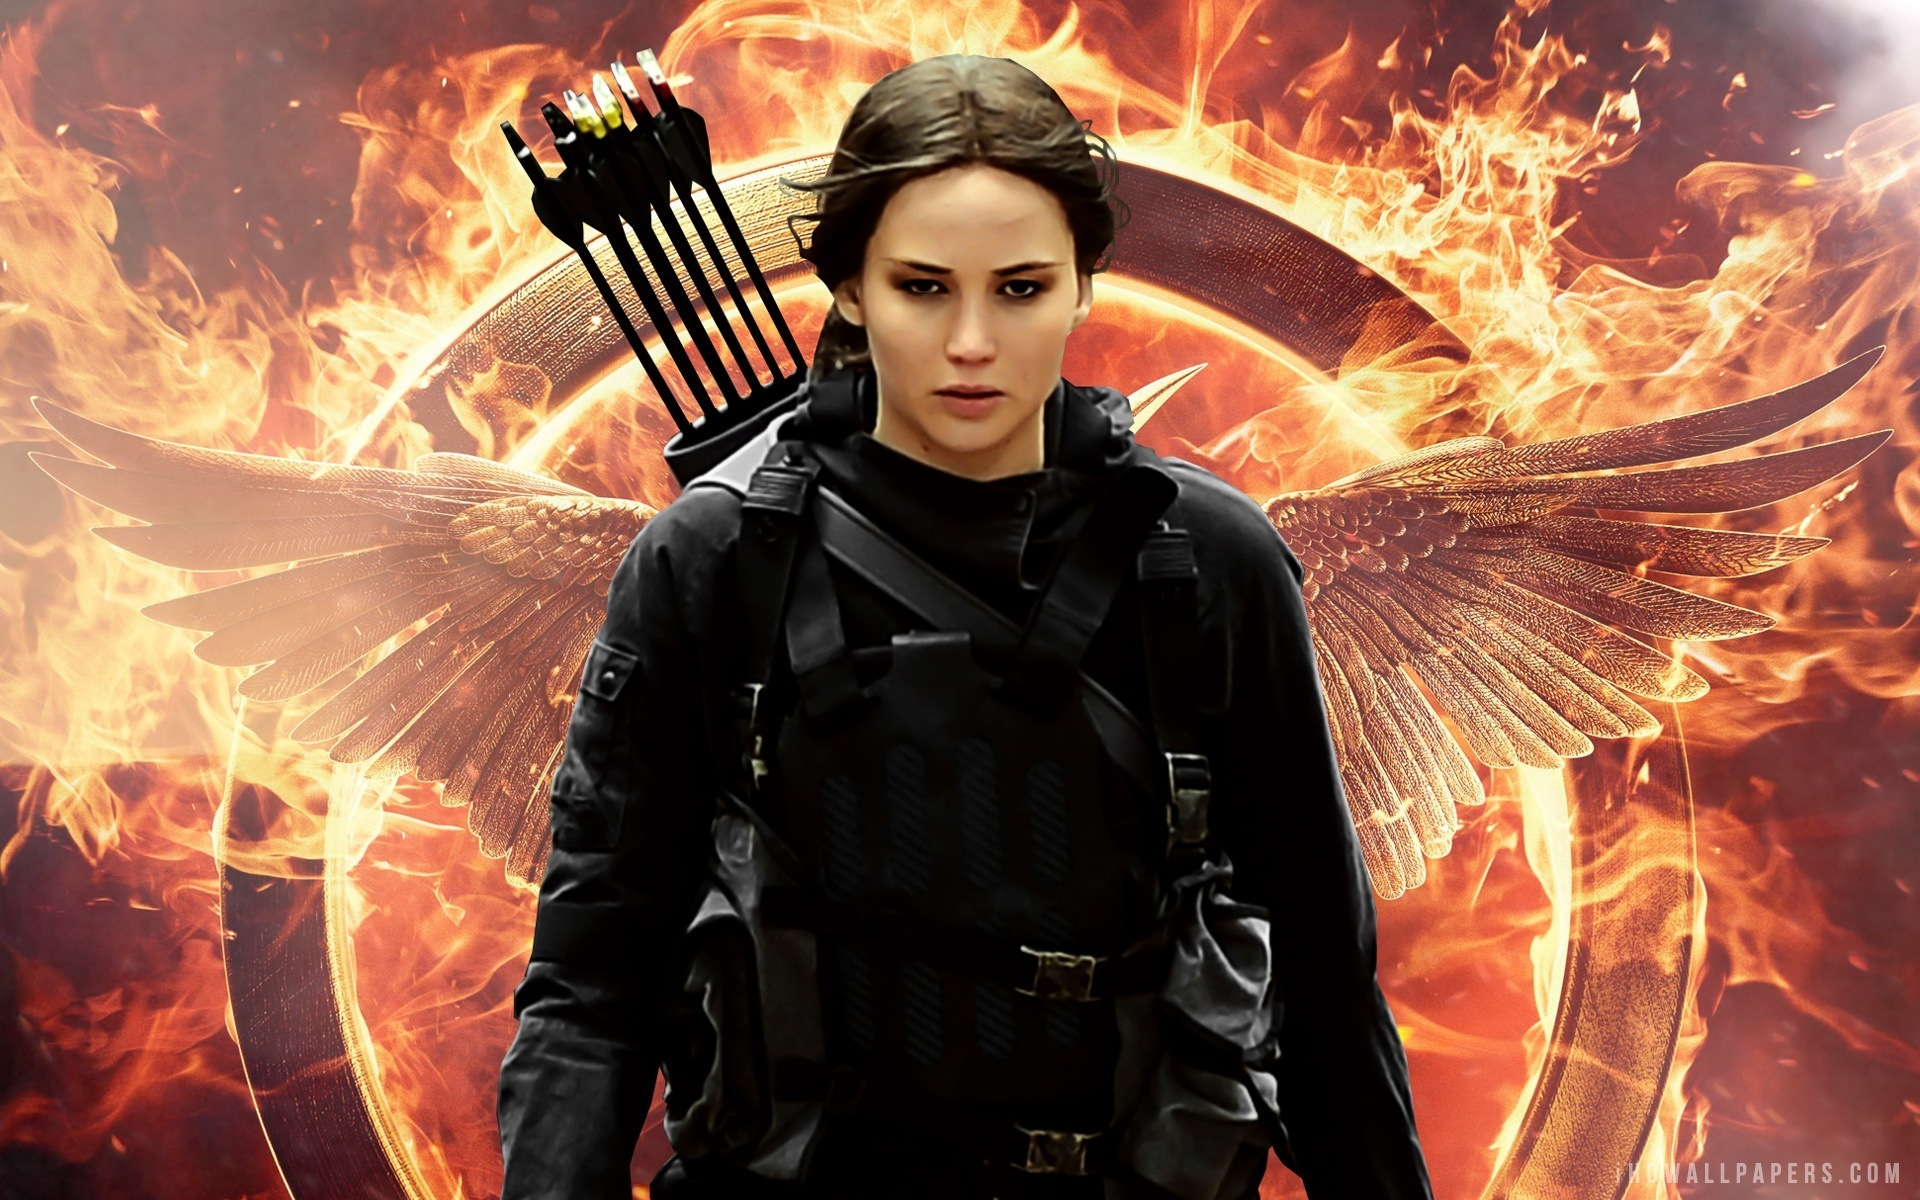 THE HUNGER GAMES: MOCKINGJAY - Part 2 Ends Series Run On ...